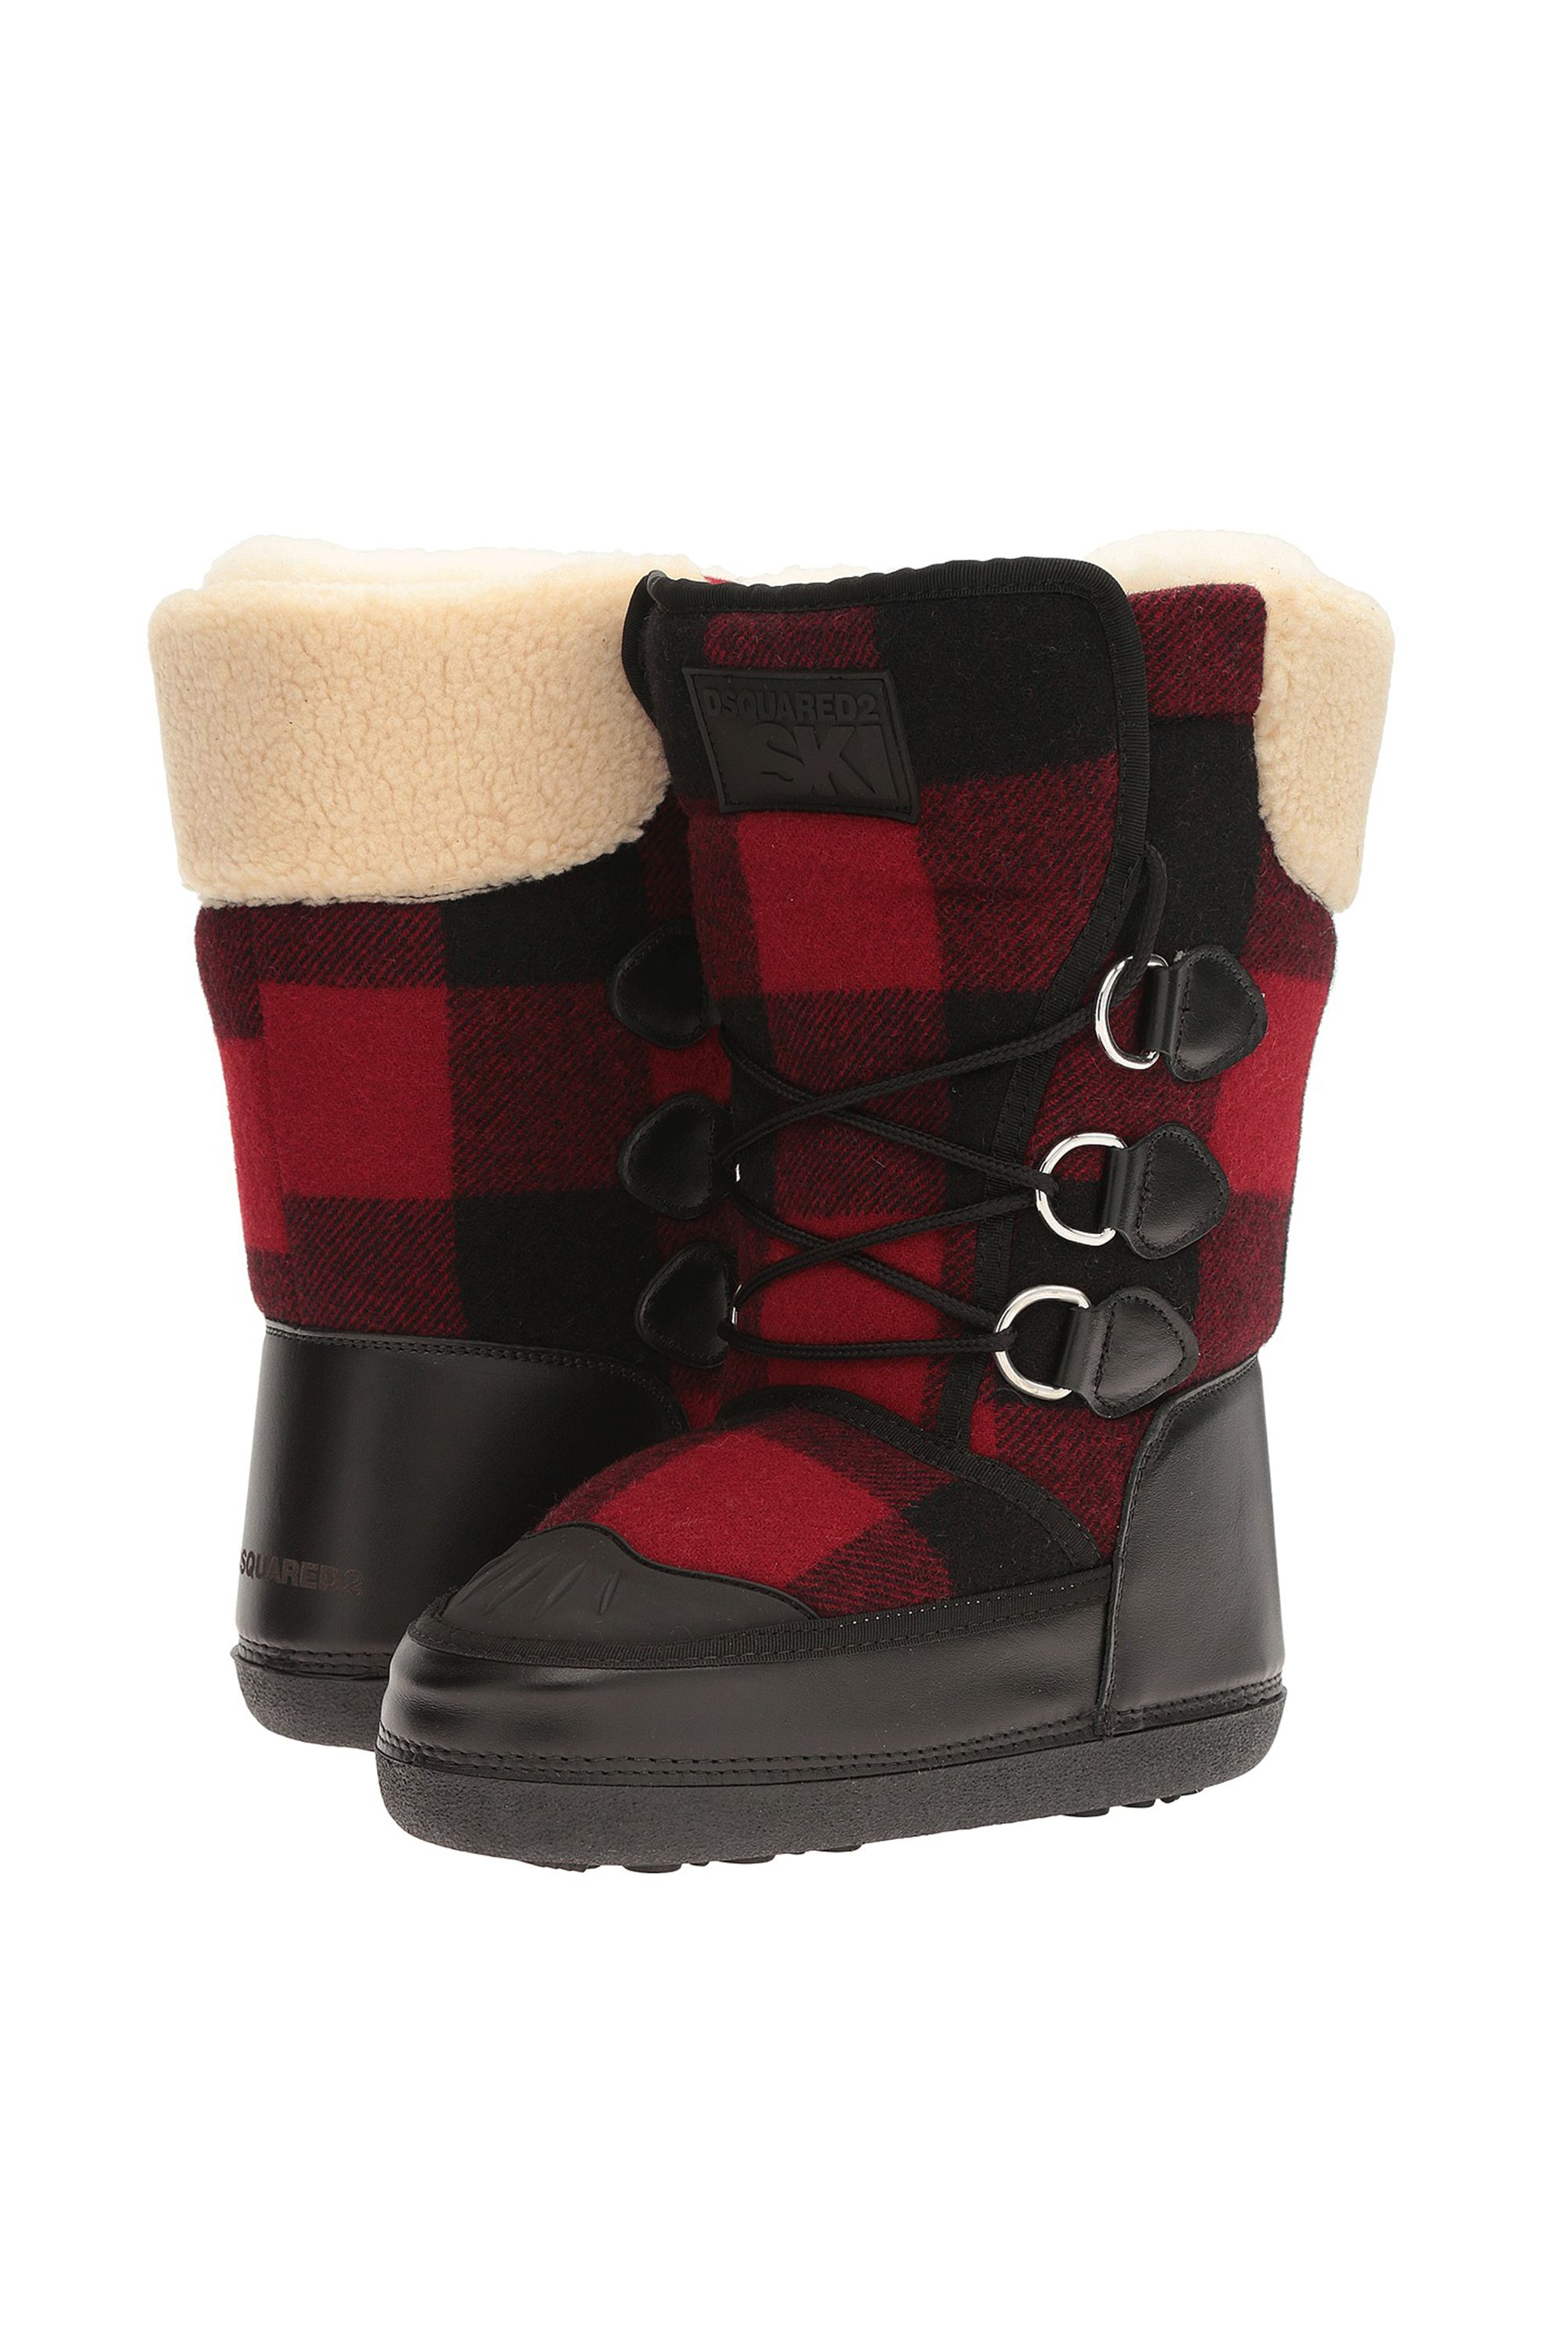 """<p>DSQUARED2, Snow Boot, $375;<a href=""""http://luxury.zappos.com/p/dsquared2-snow-boot-nero-rosso/product/8839809/color/14361"""" data-tracking-id=""""recirc-text-link"""">zappos.com</a></p>"""